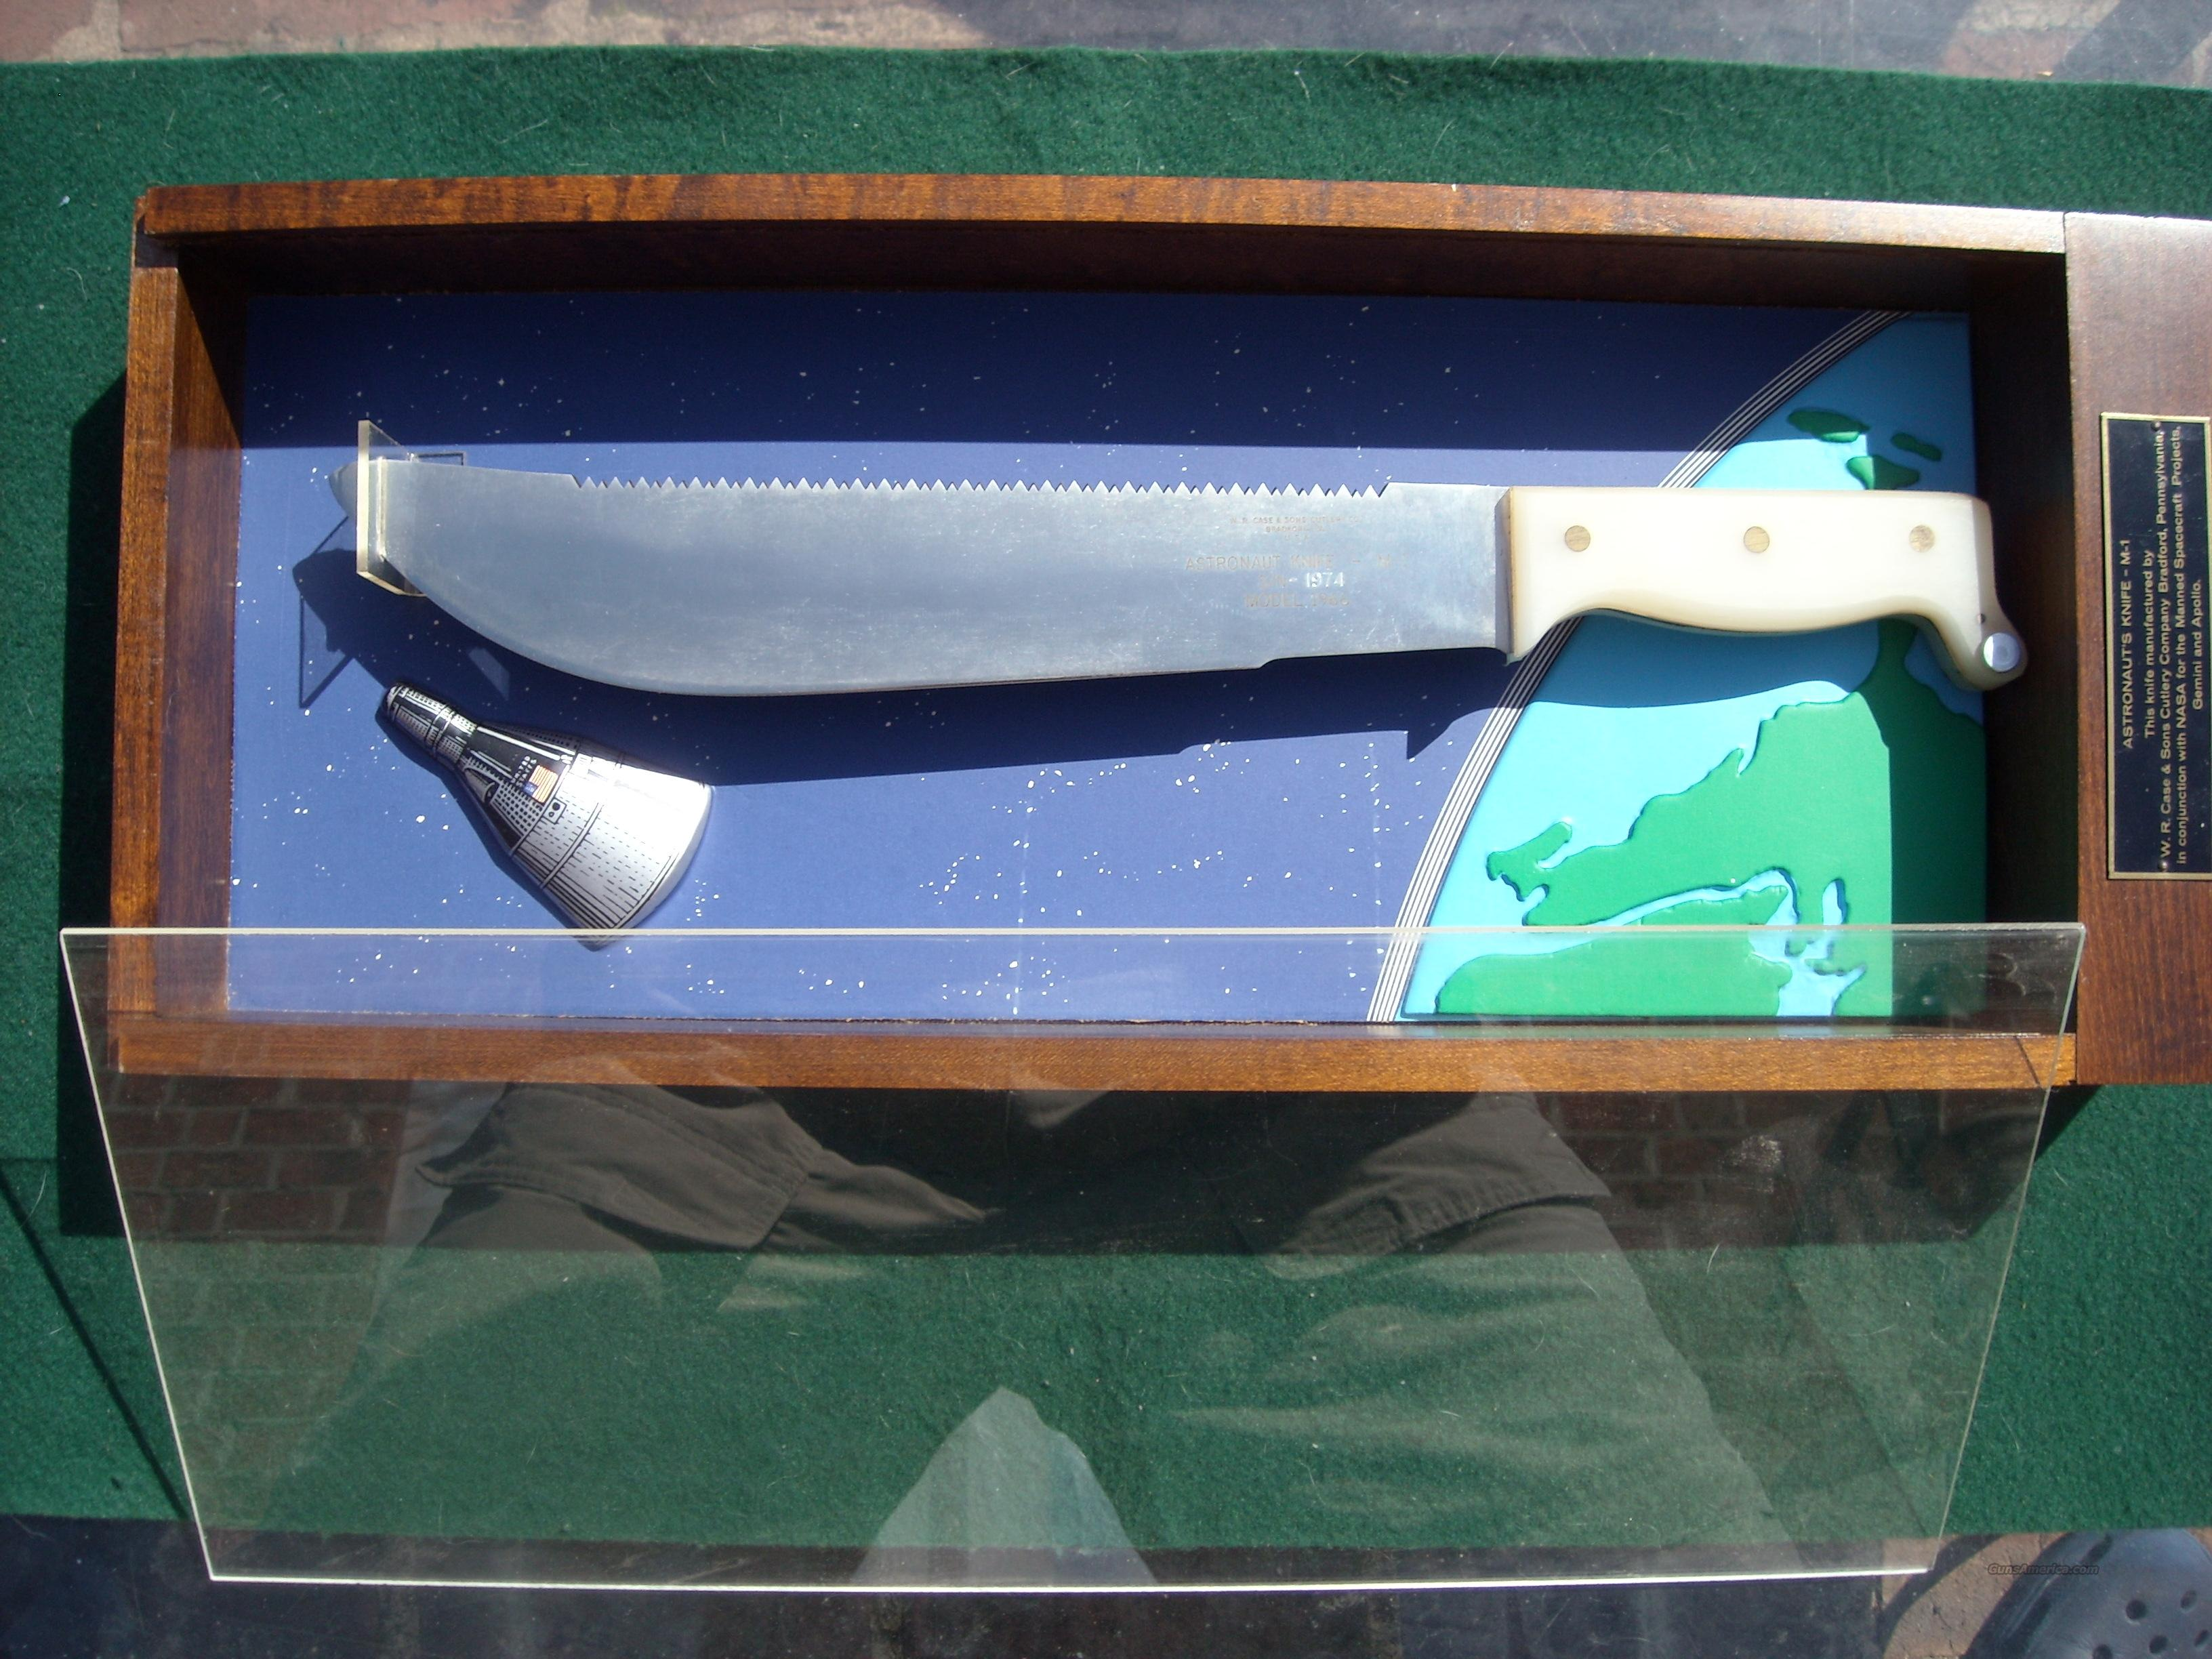 Case Model 1966 M-1 Astronaut knife  Non-Guns > Knives/Swords > Knives > Fixed Blade > Hand Made